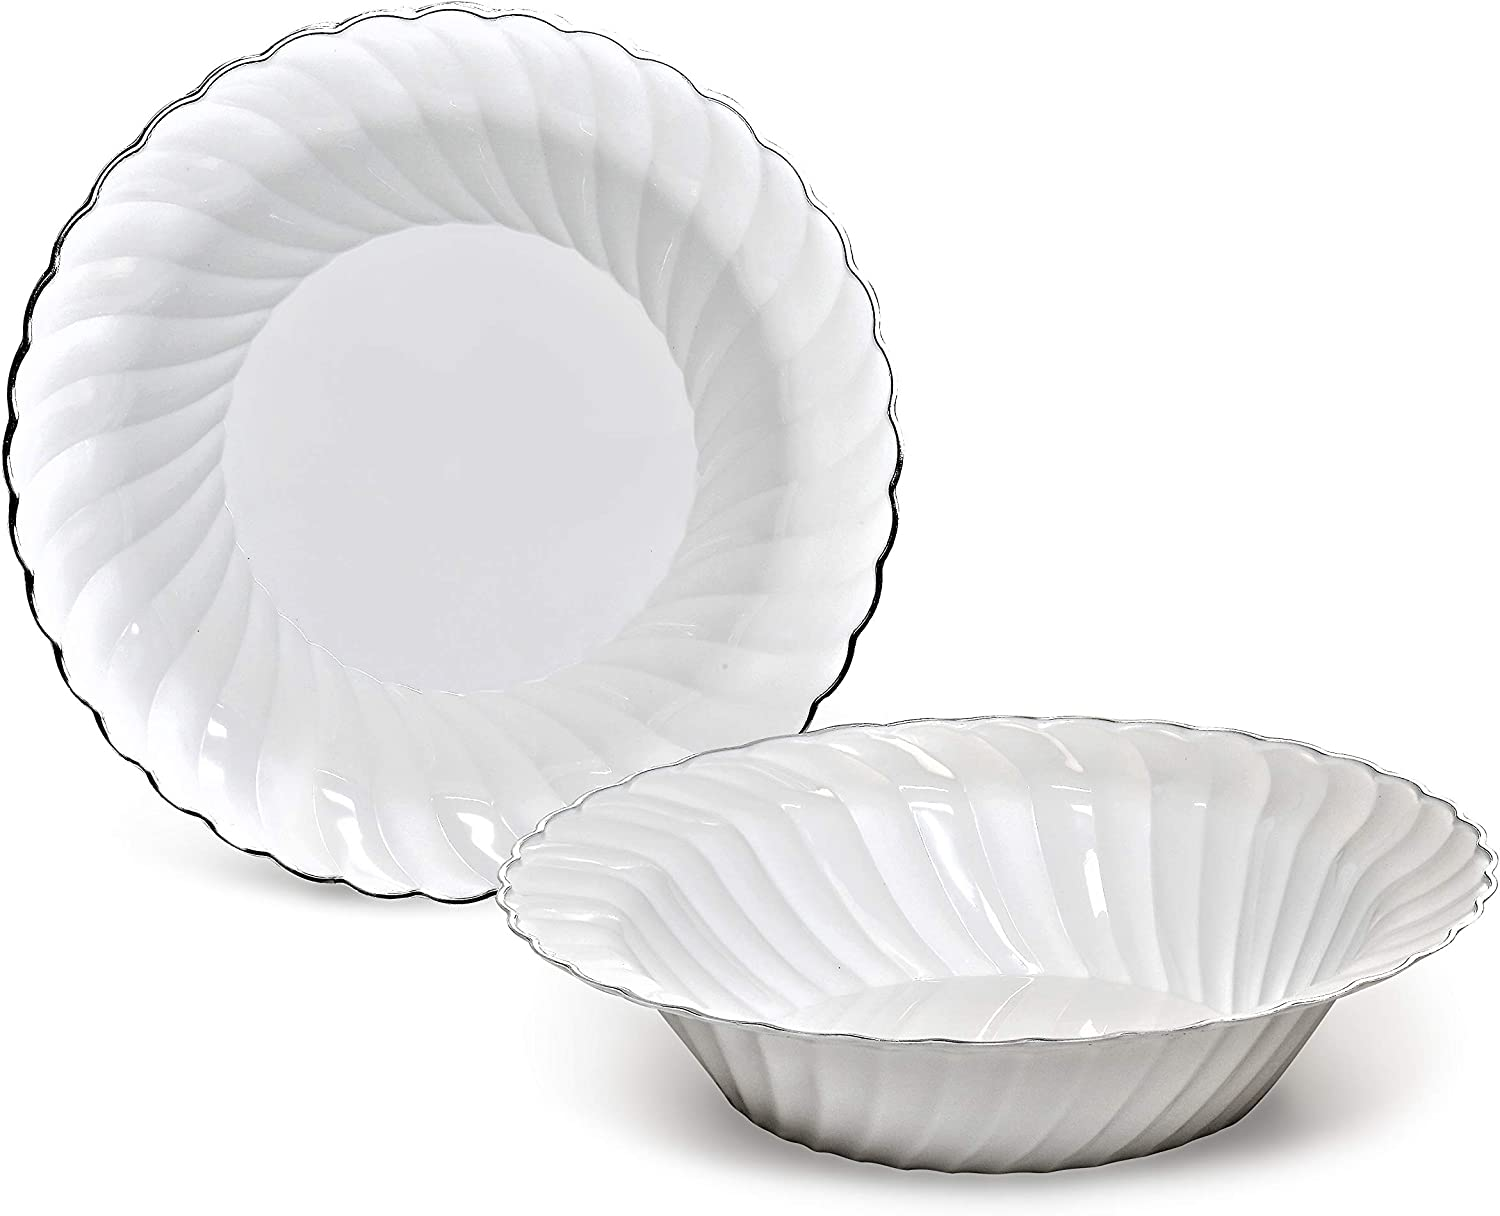 OCCASIONS 120 Bowls Pack, Heavyweight Wedding Party Disposable Plastic Bowls (12oz Soup Bowl, Blossom in White & Silver) 717CY68%2BFJL